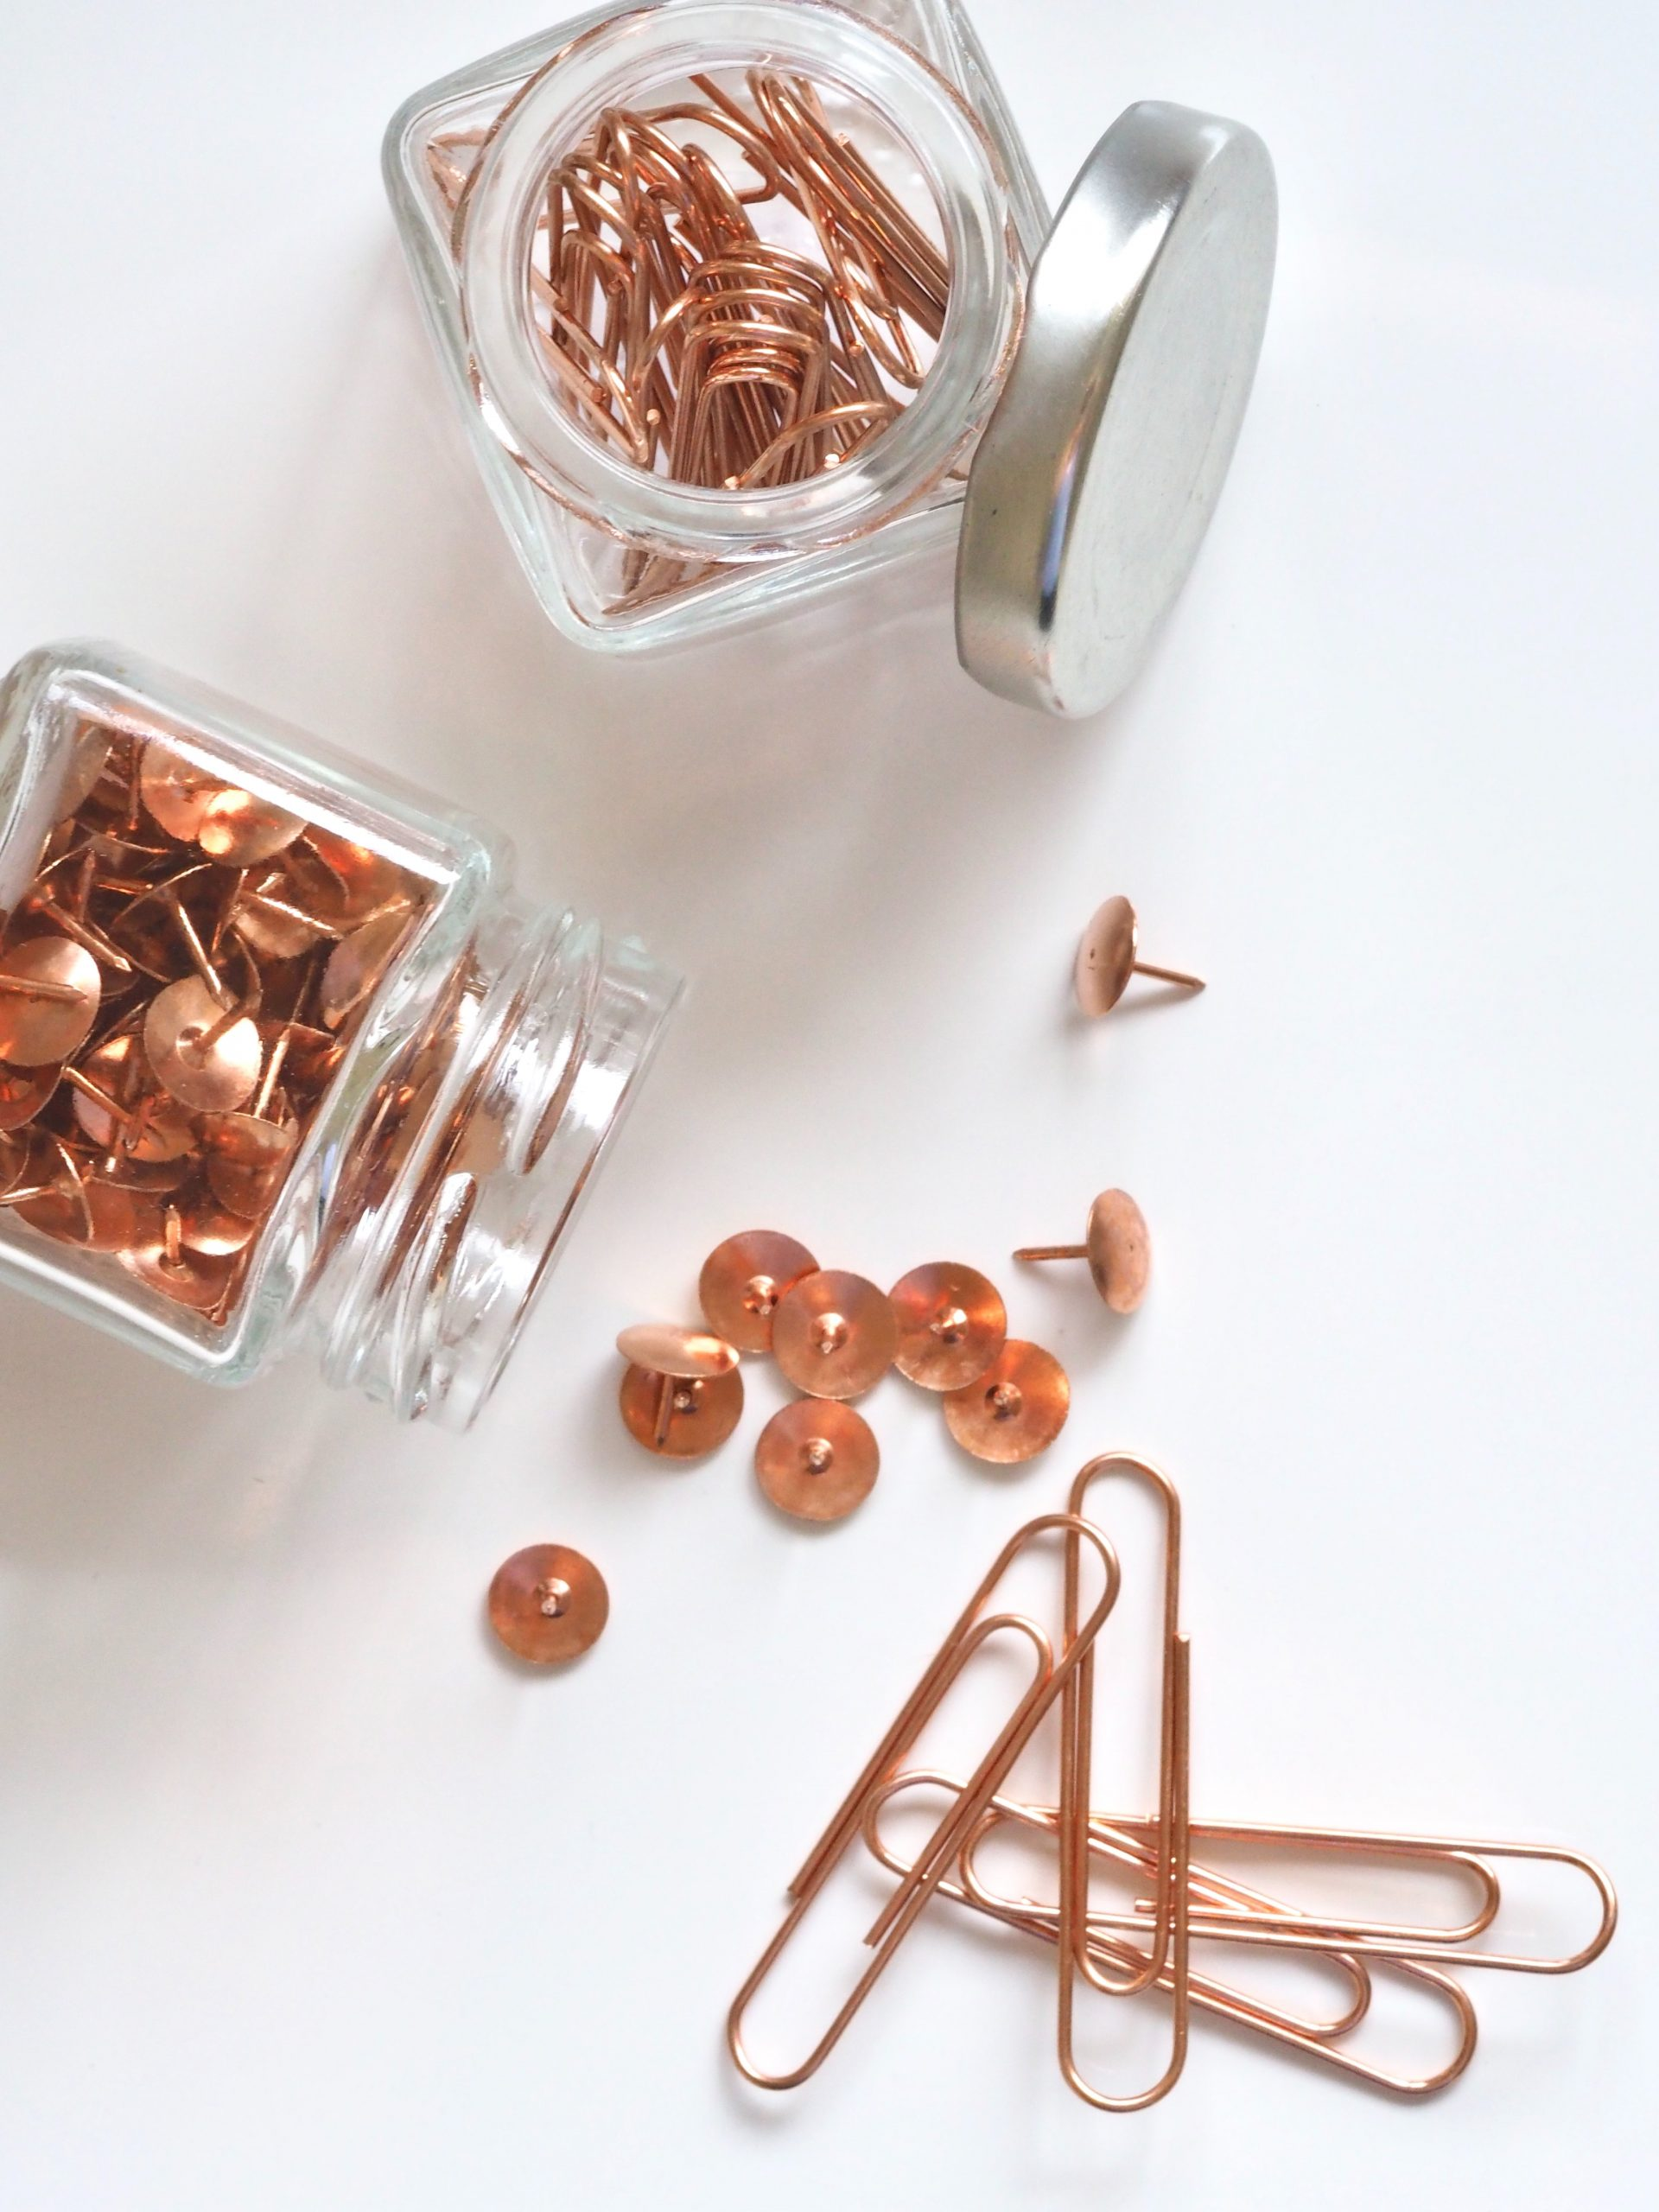 Copper Additive Manufacturing for Heat Exchanger Design